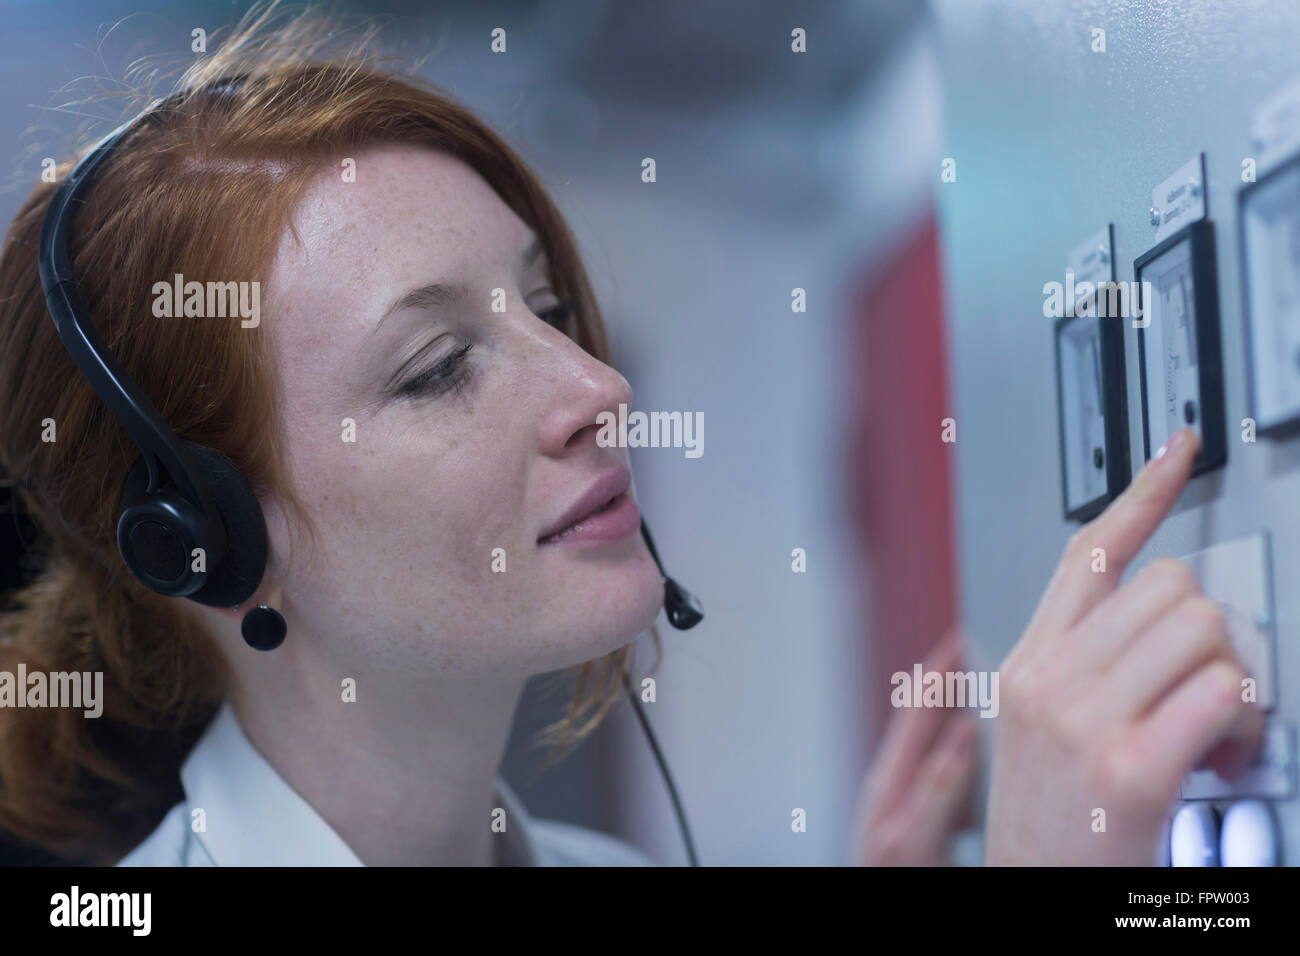 Young female engineer wearing headset and examining in control room, Freiburg Im Breisgau, Baden-Württemberg, - Stock Image